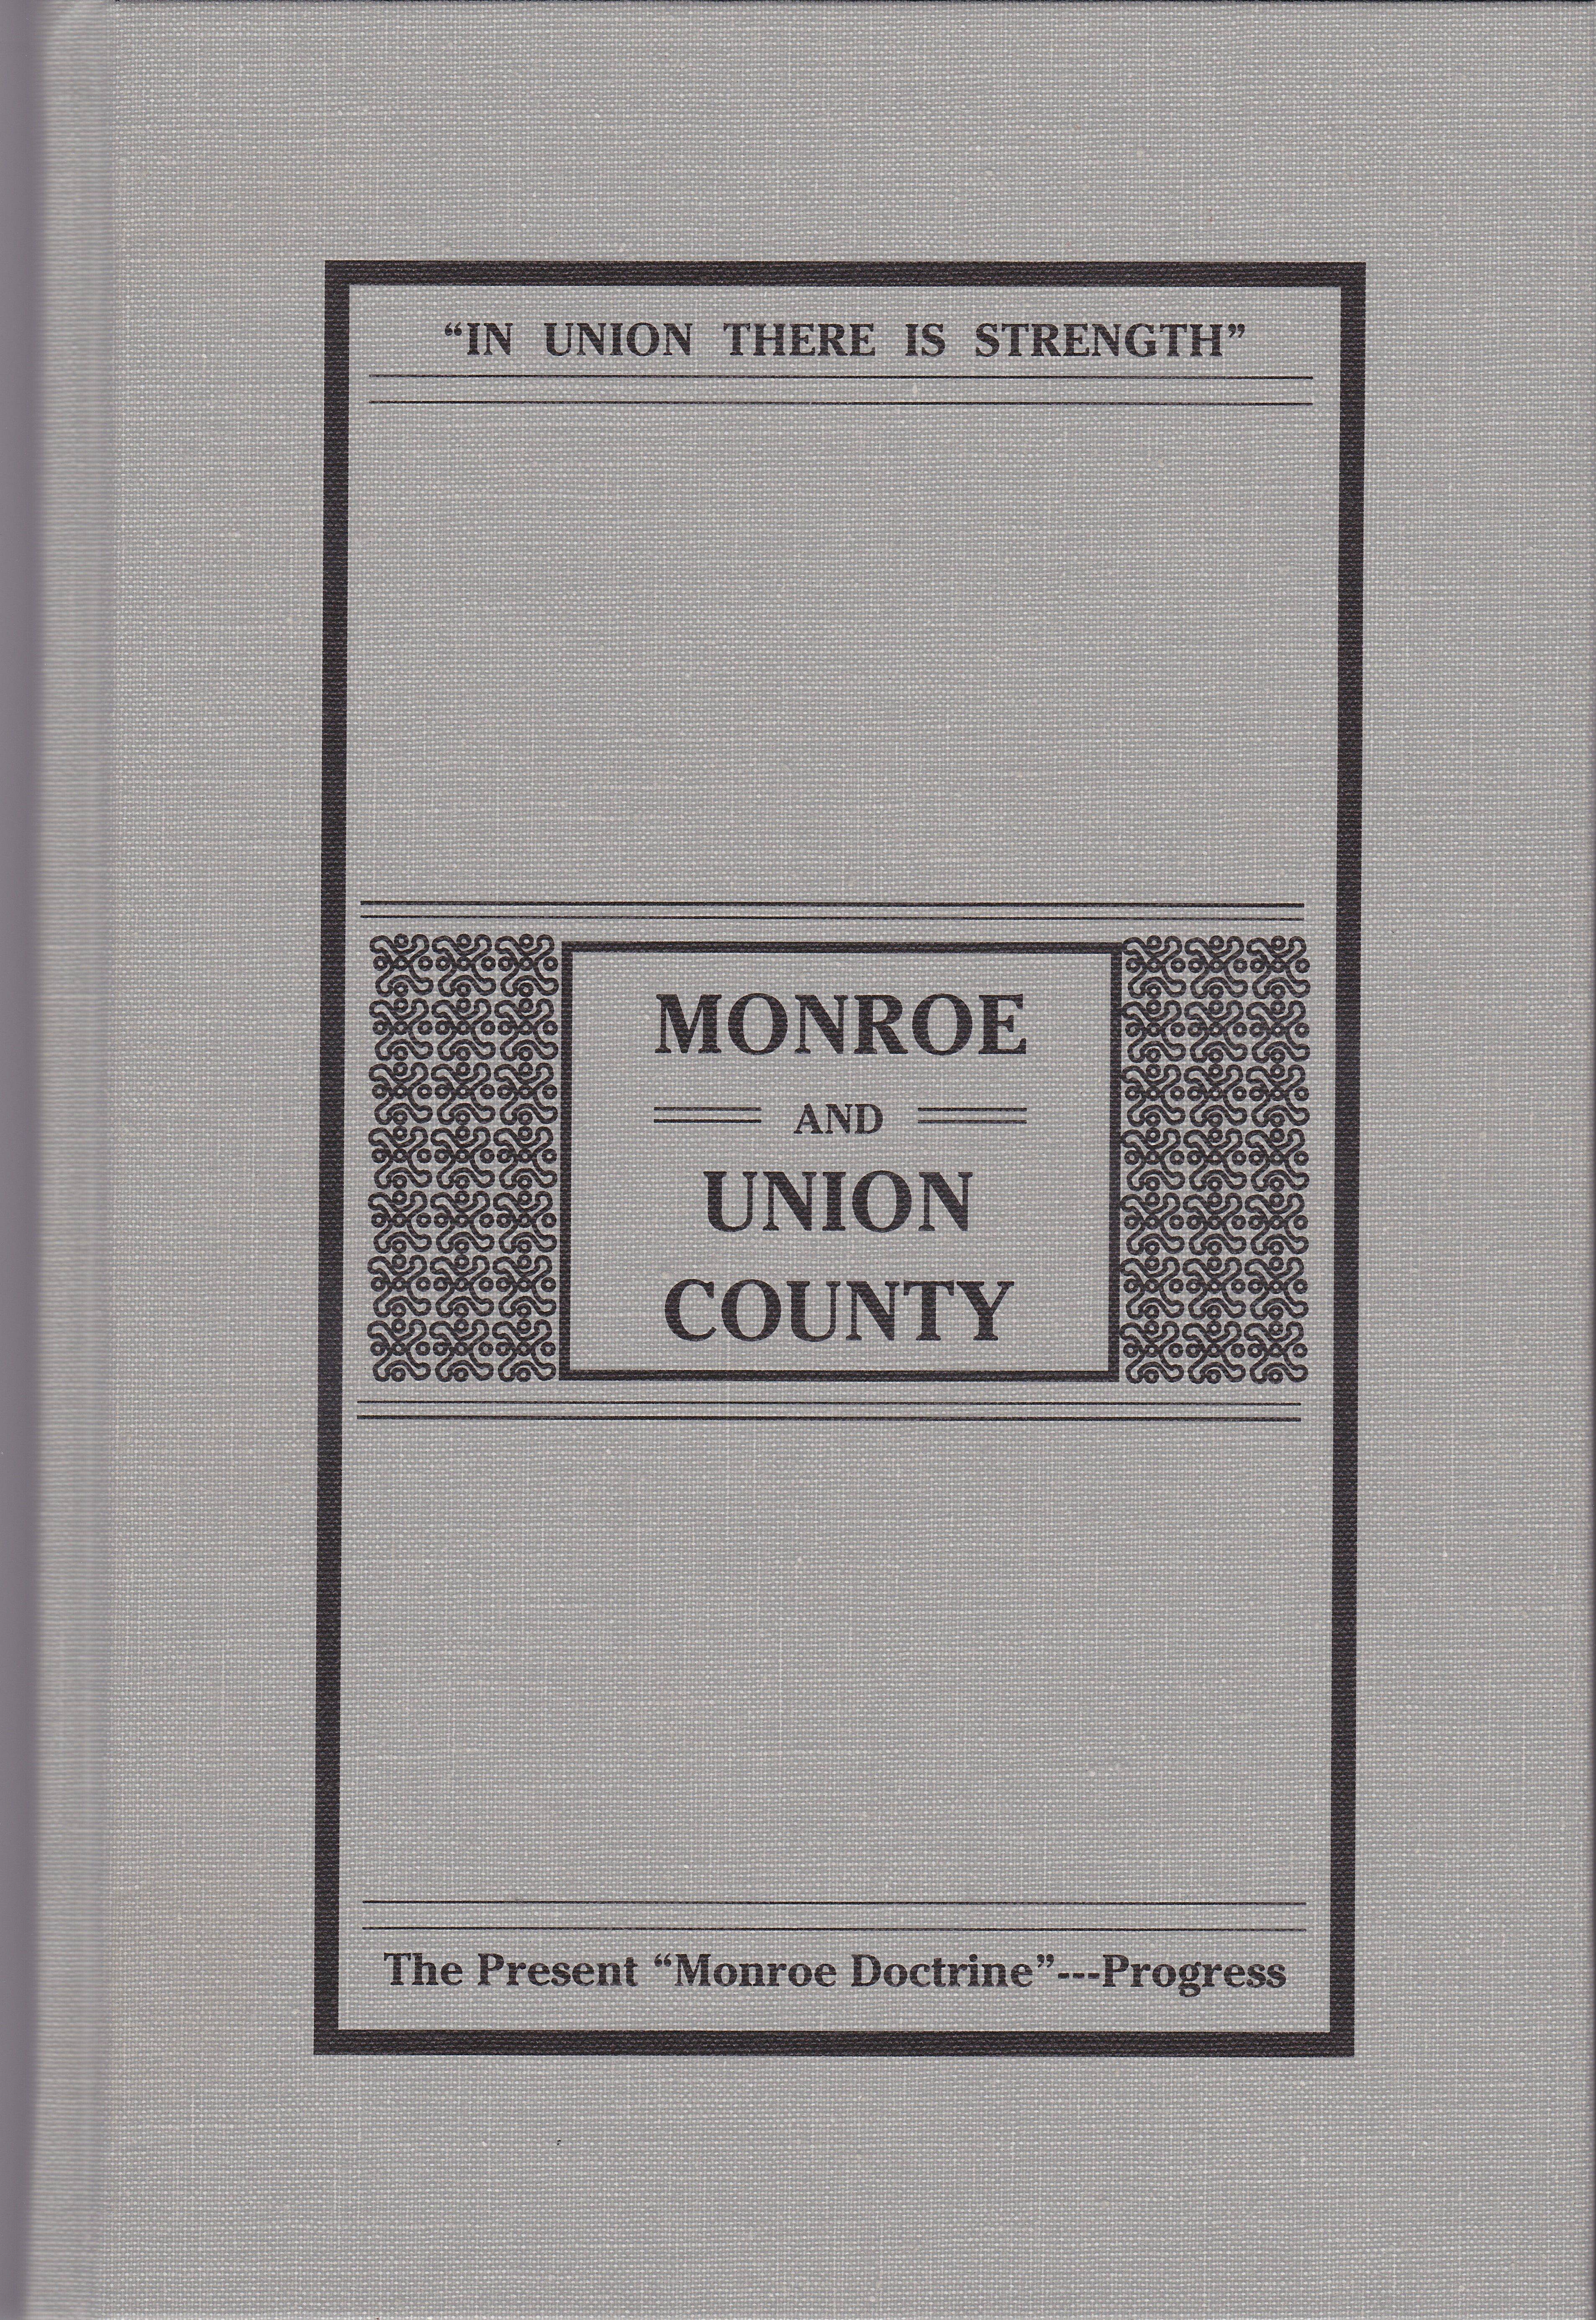 Sketches of Monroe and Union Co.